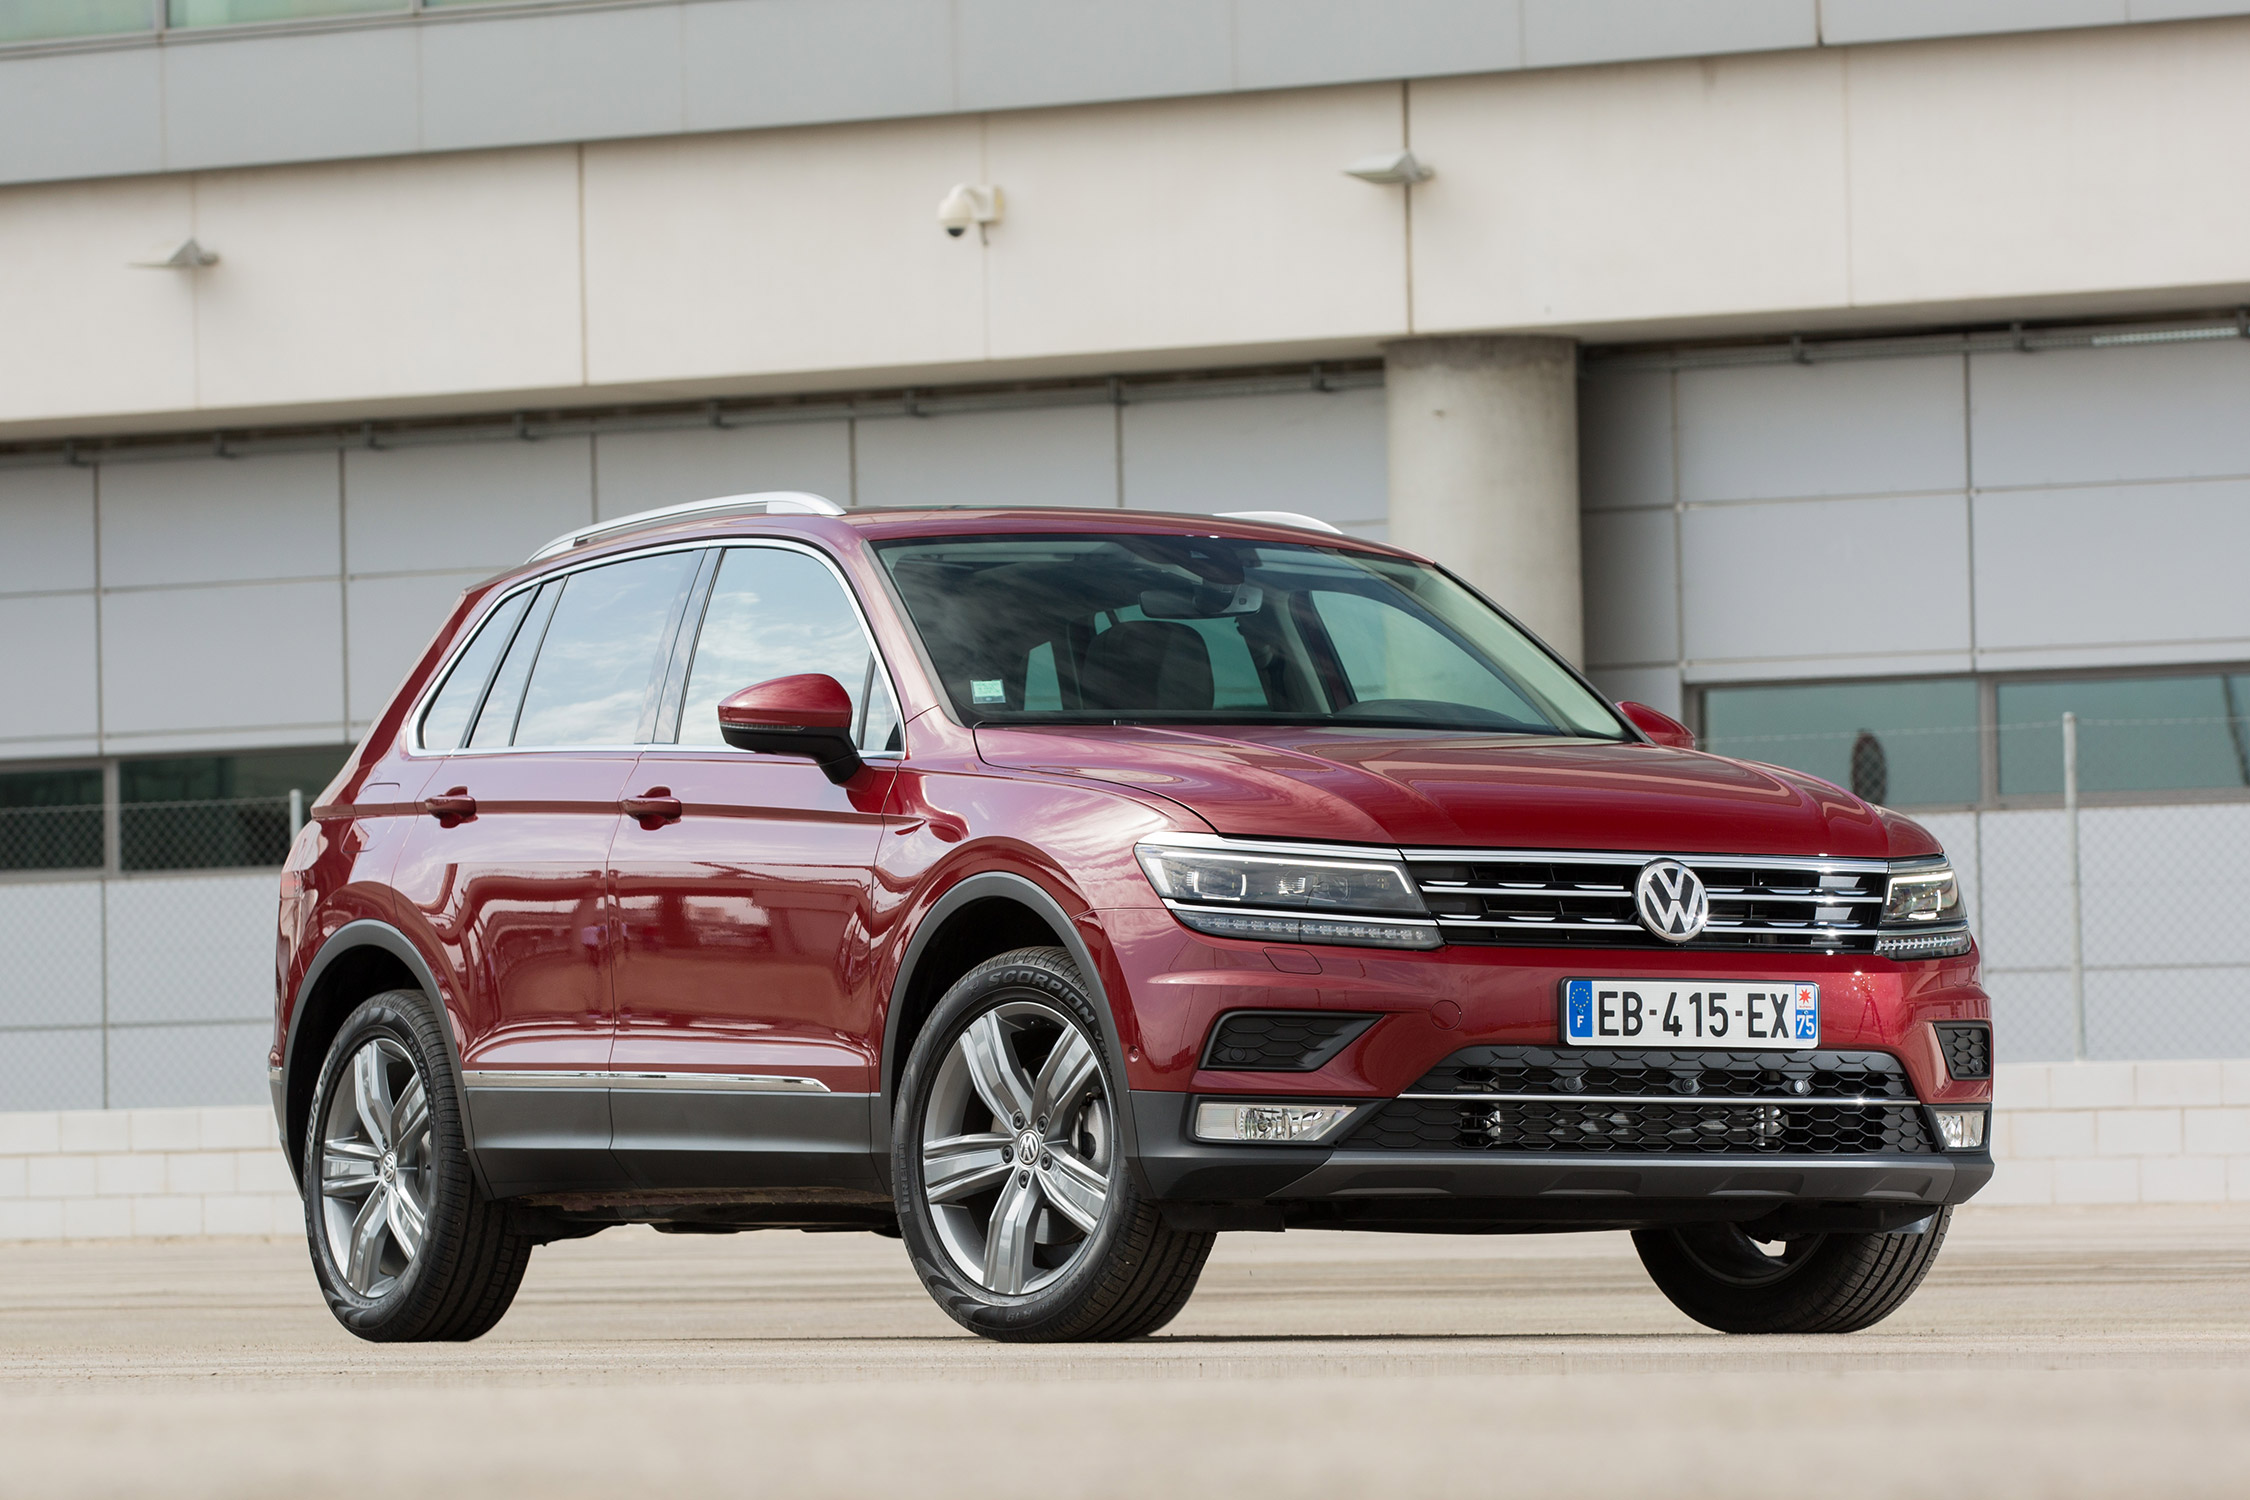 photo volkswagen tiguan ii 2 0 tdi 4motion 190 ch suv 2016 m diatheque. Black Bedroom Furniture Sets. Home Design Ideas